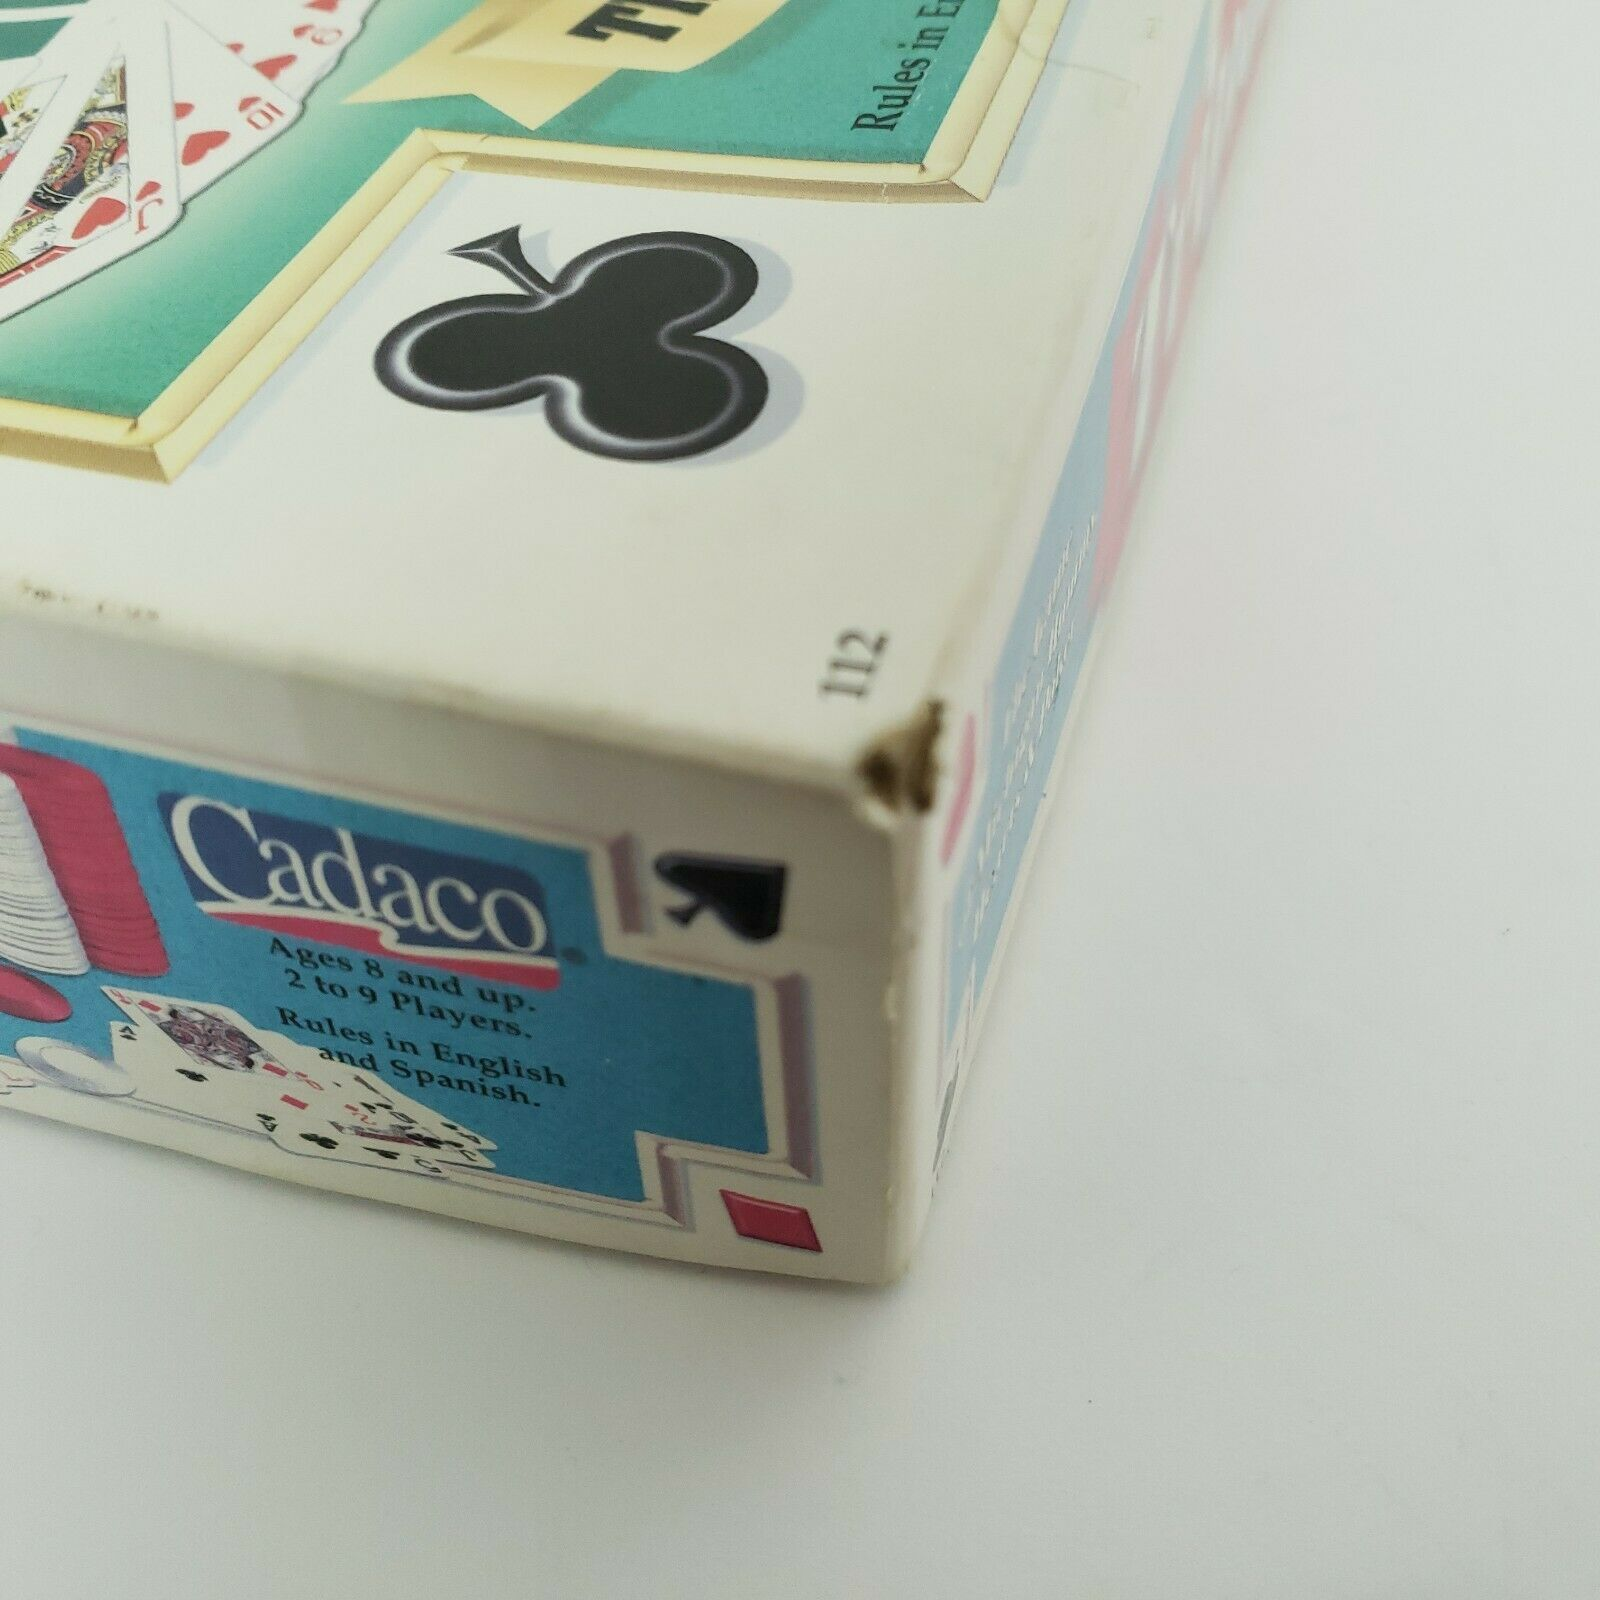 Tripoley Board Game Deluxe Mat Version Cadaco 2-9 Players Vintage 1999 Complete image 11